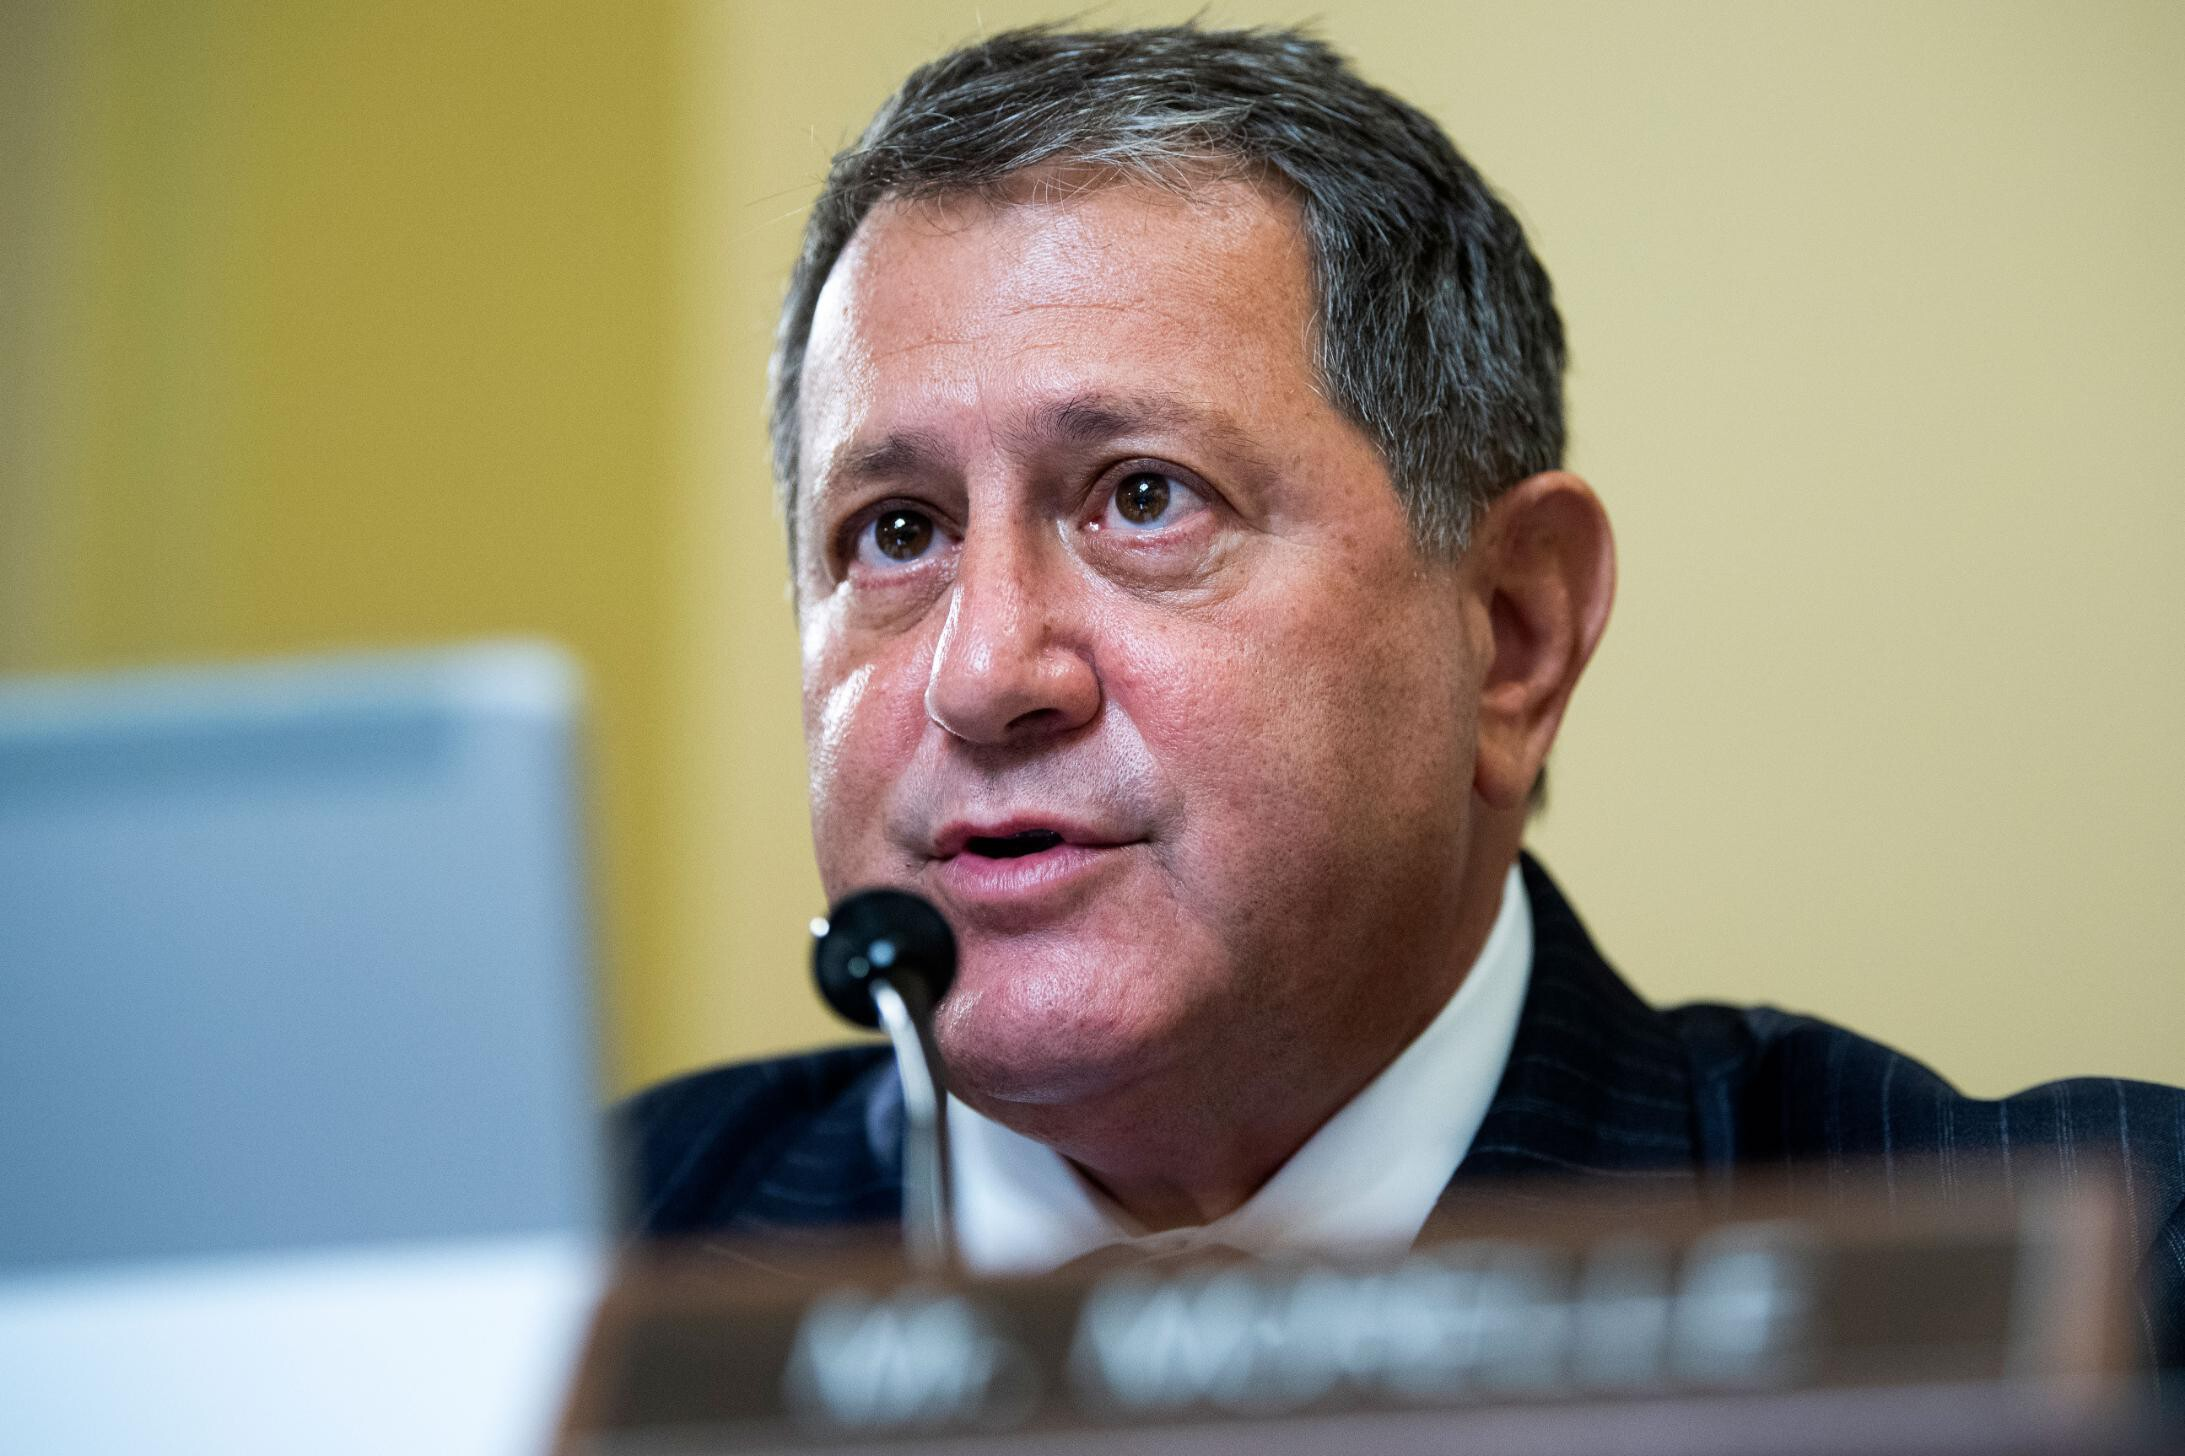 Rep. Joe Morelle says he has tested positive for Covid-19